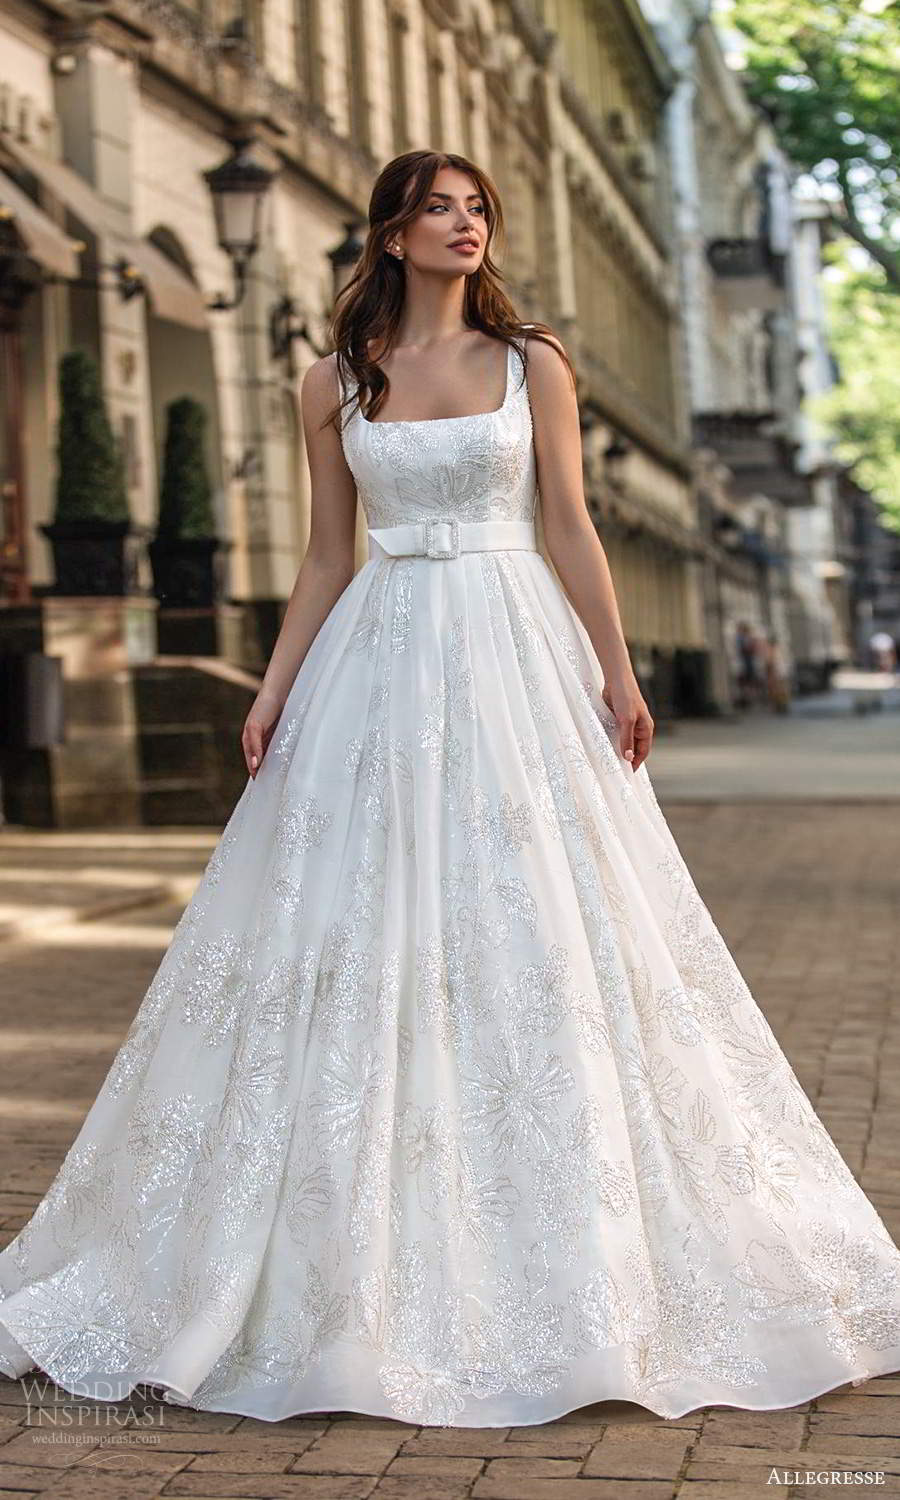 allegresse 2021 bridal sleeveless thick straps square neckline fully embellished a line ball gown wedding dress chapel train (6) mv